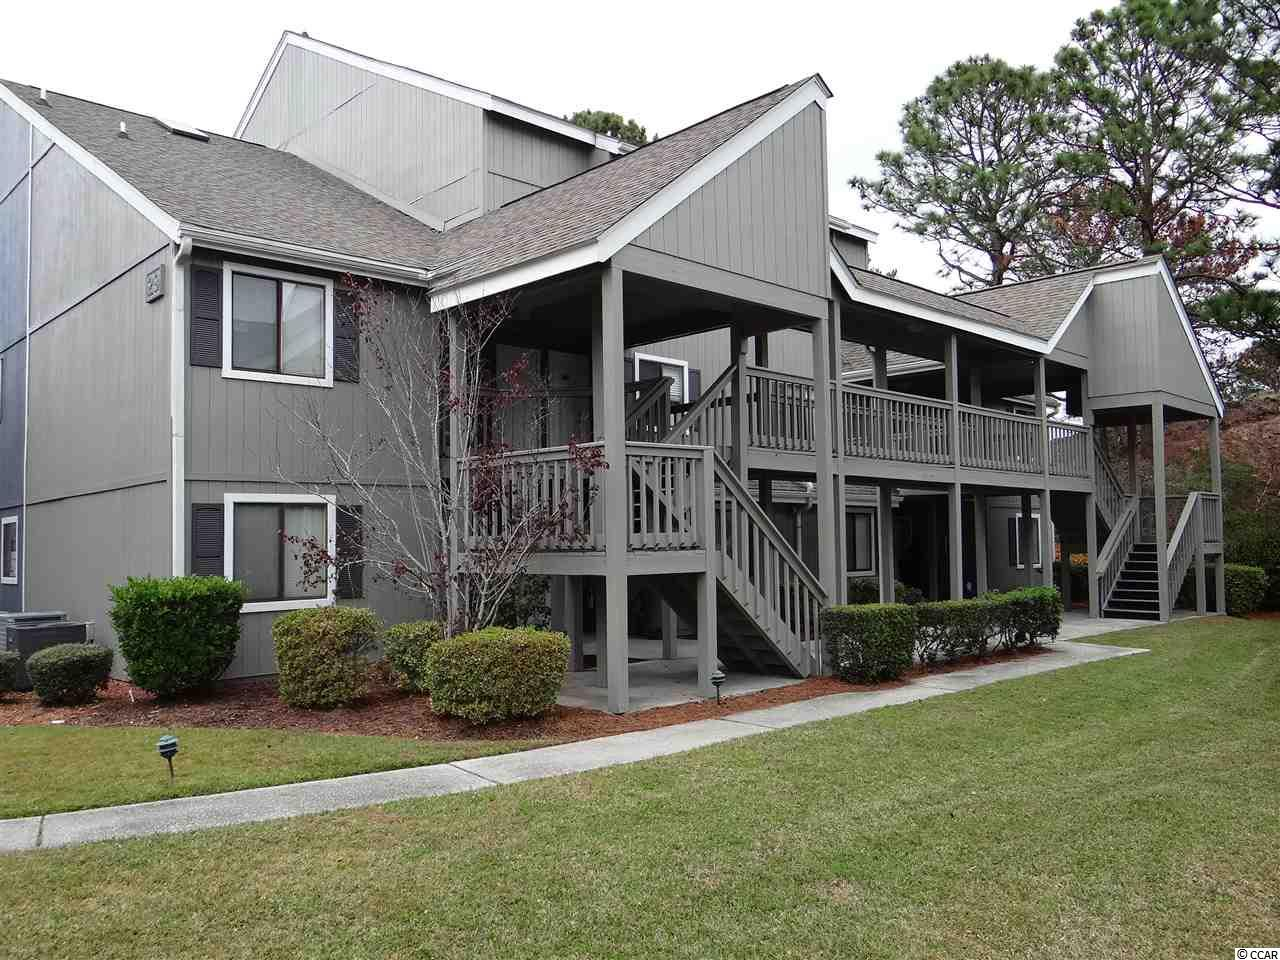 2 bedroom 2 bath spiral staircase condo in Golf Colony Resort within Deerfield Plantation of Surfside Beach, SC. Large unit overlooking the pool in a centrally located area of the Grand Strand. This is the perfect condo for the person that wants to make his home exactly the way he wants. Have your real estate agent show you this potentially wonderful unit today.